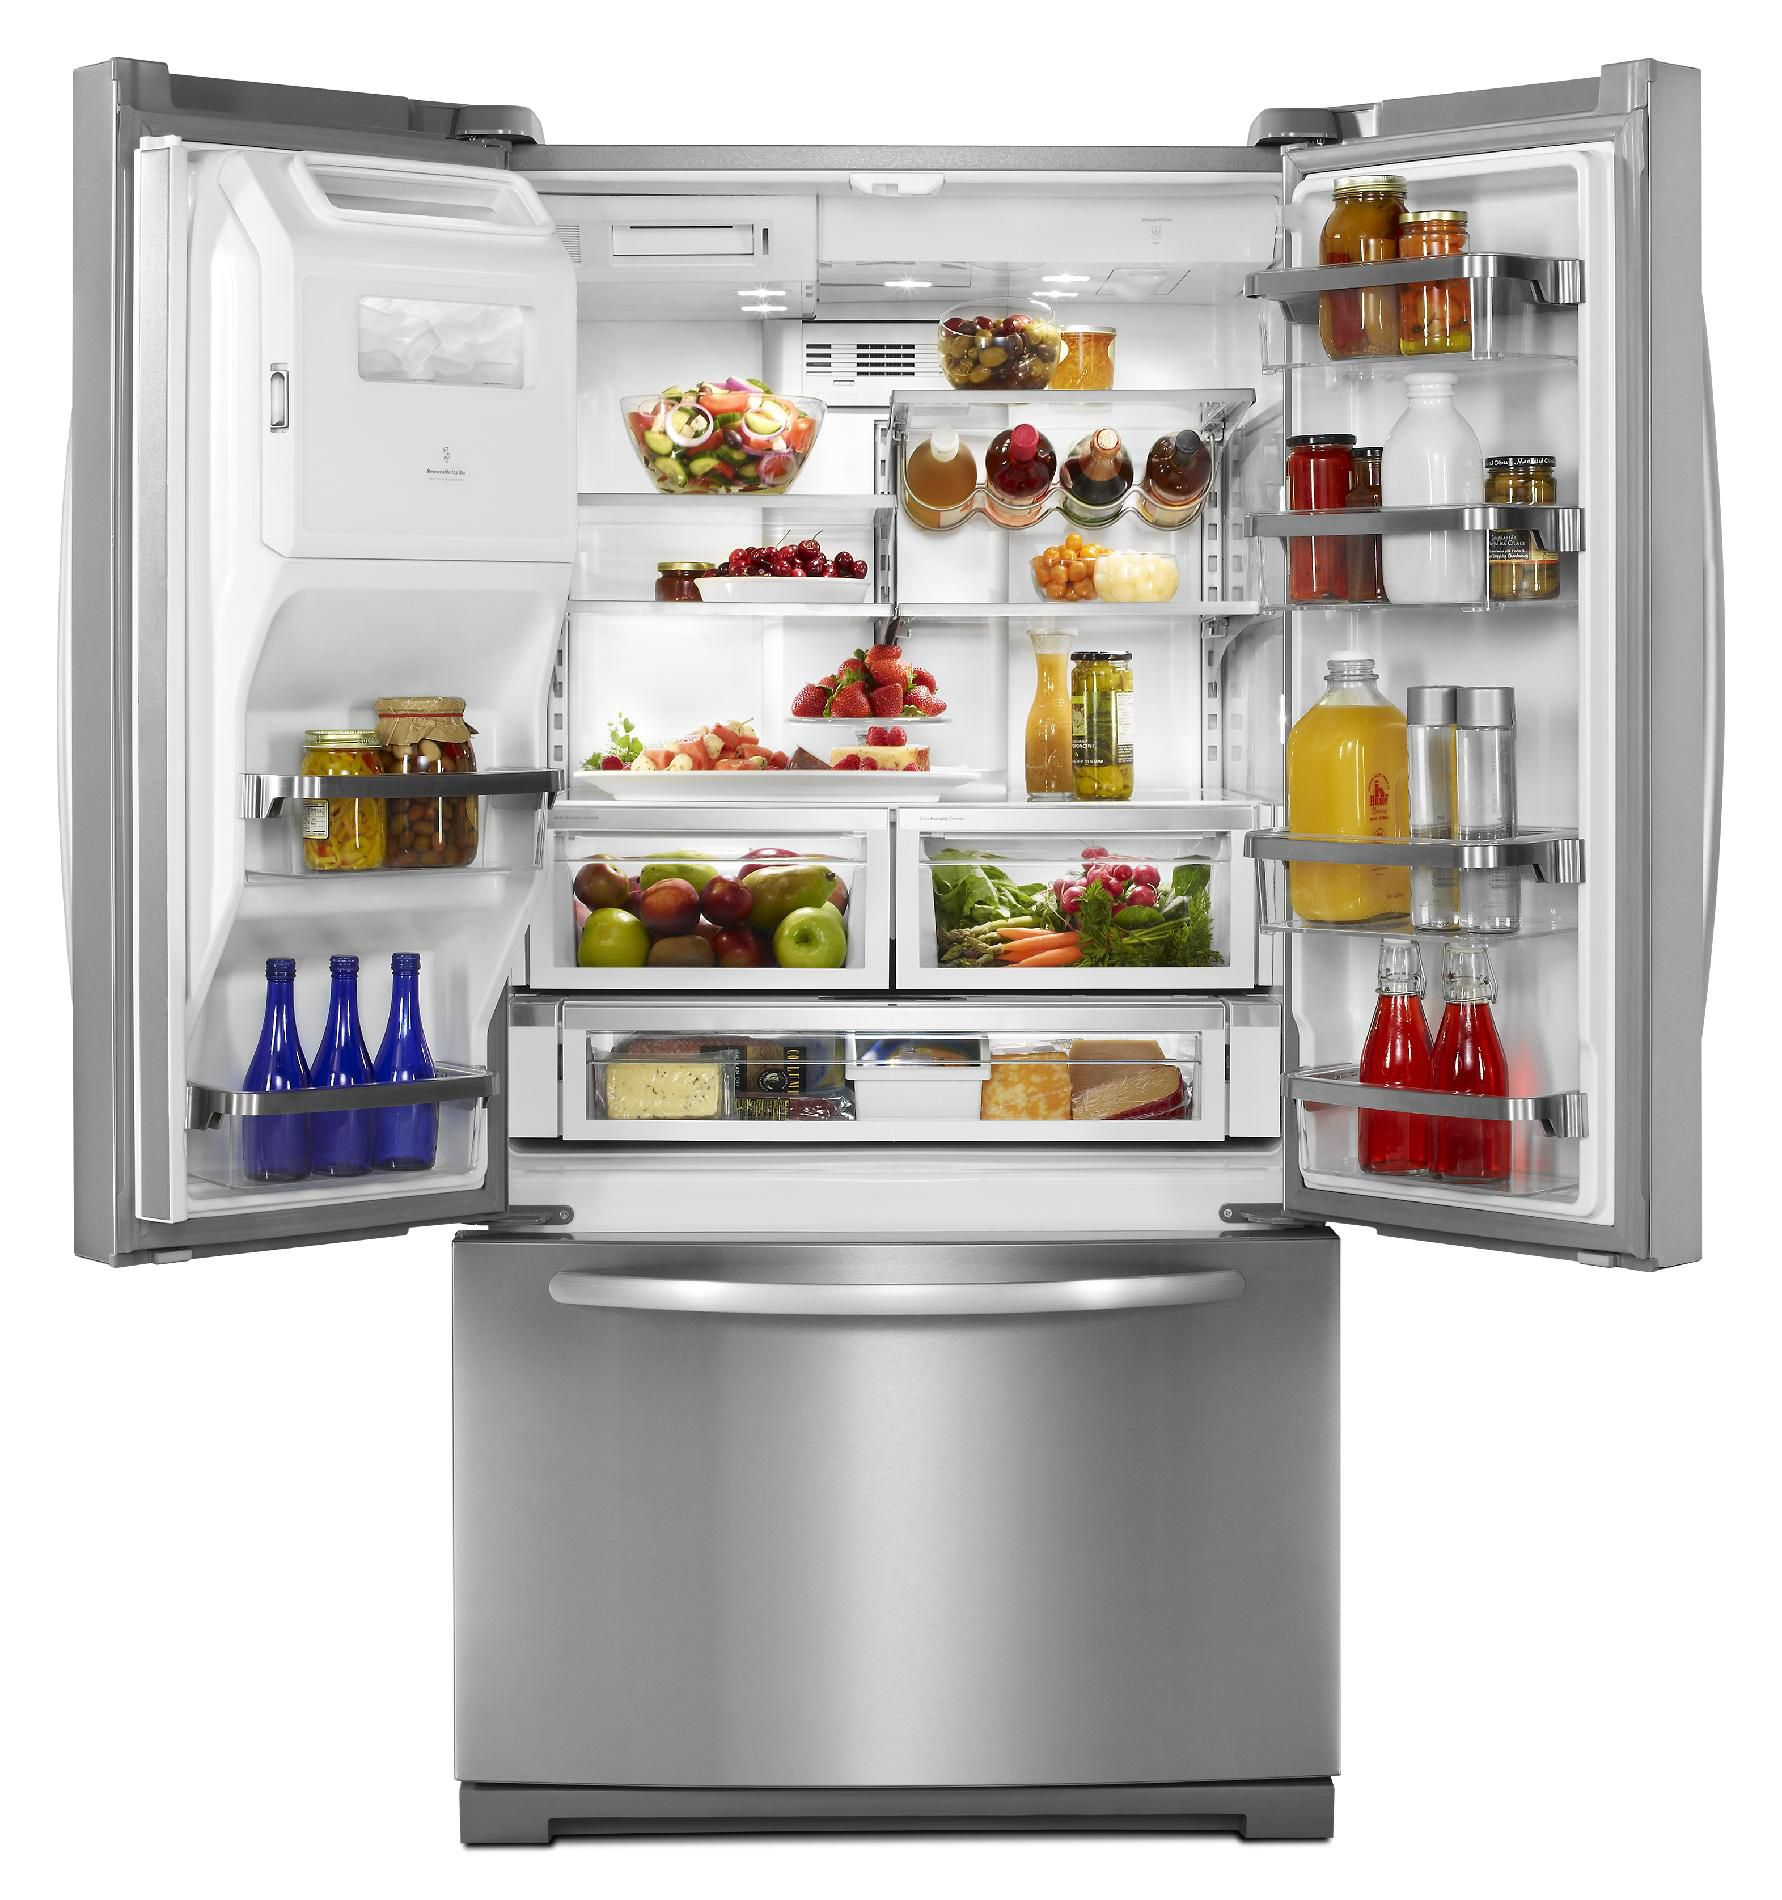 KitchenAid 26.8 Cu. Ft. French Door Architect Series II Monochromatic Stainless Refrigerator